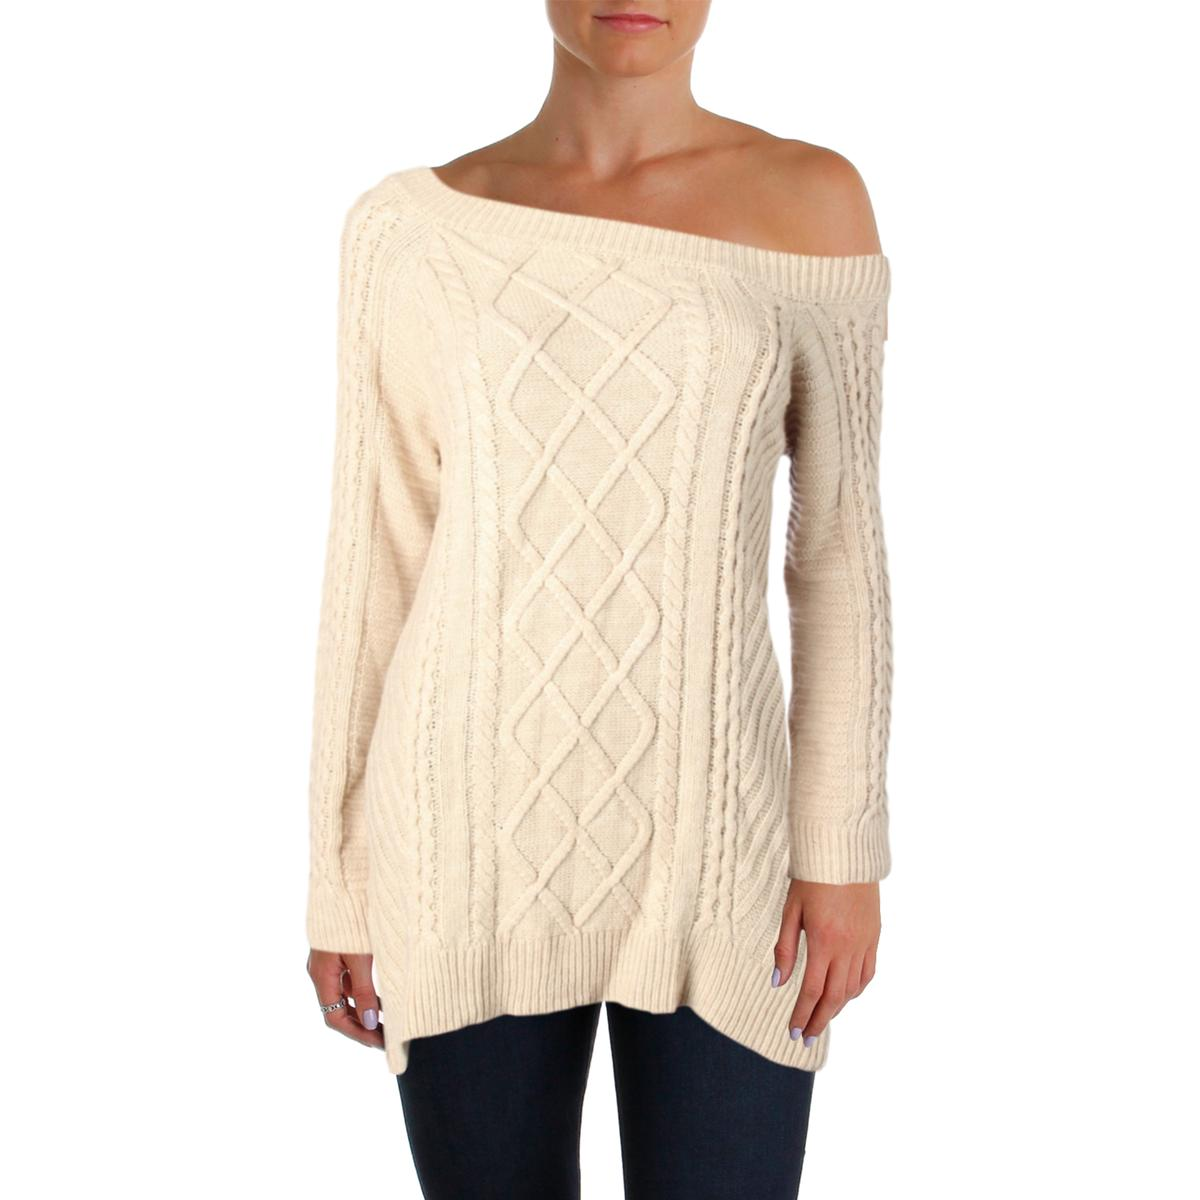 Sanctuary Womens Tinsley Cable Knit Casual Pullover Sweater Top BHFO ... dd233b1d4